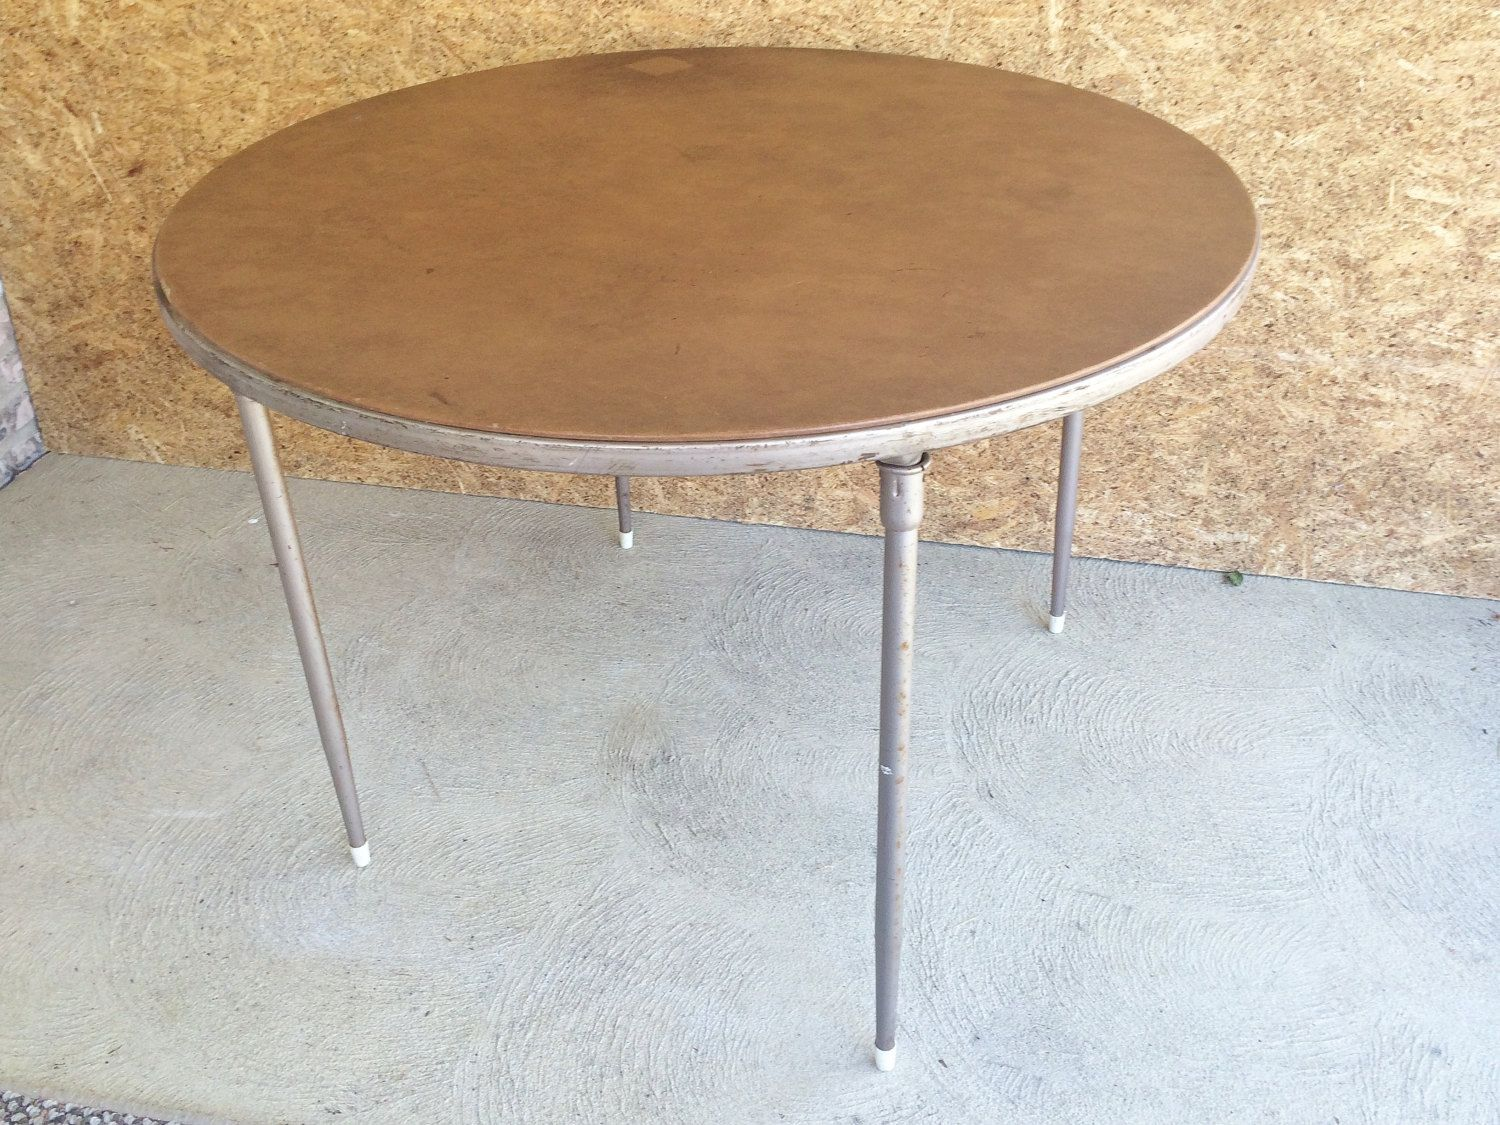 Folding Round Card Table | Tyres2c